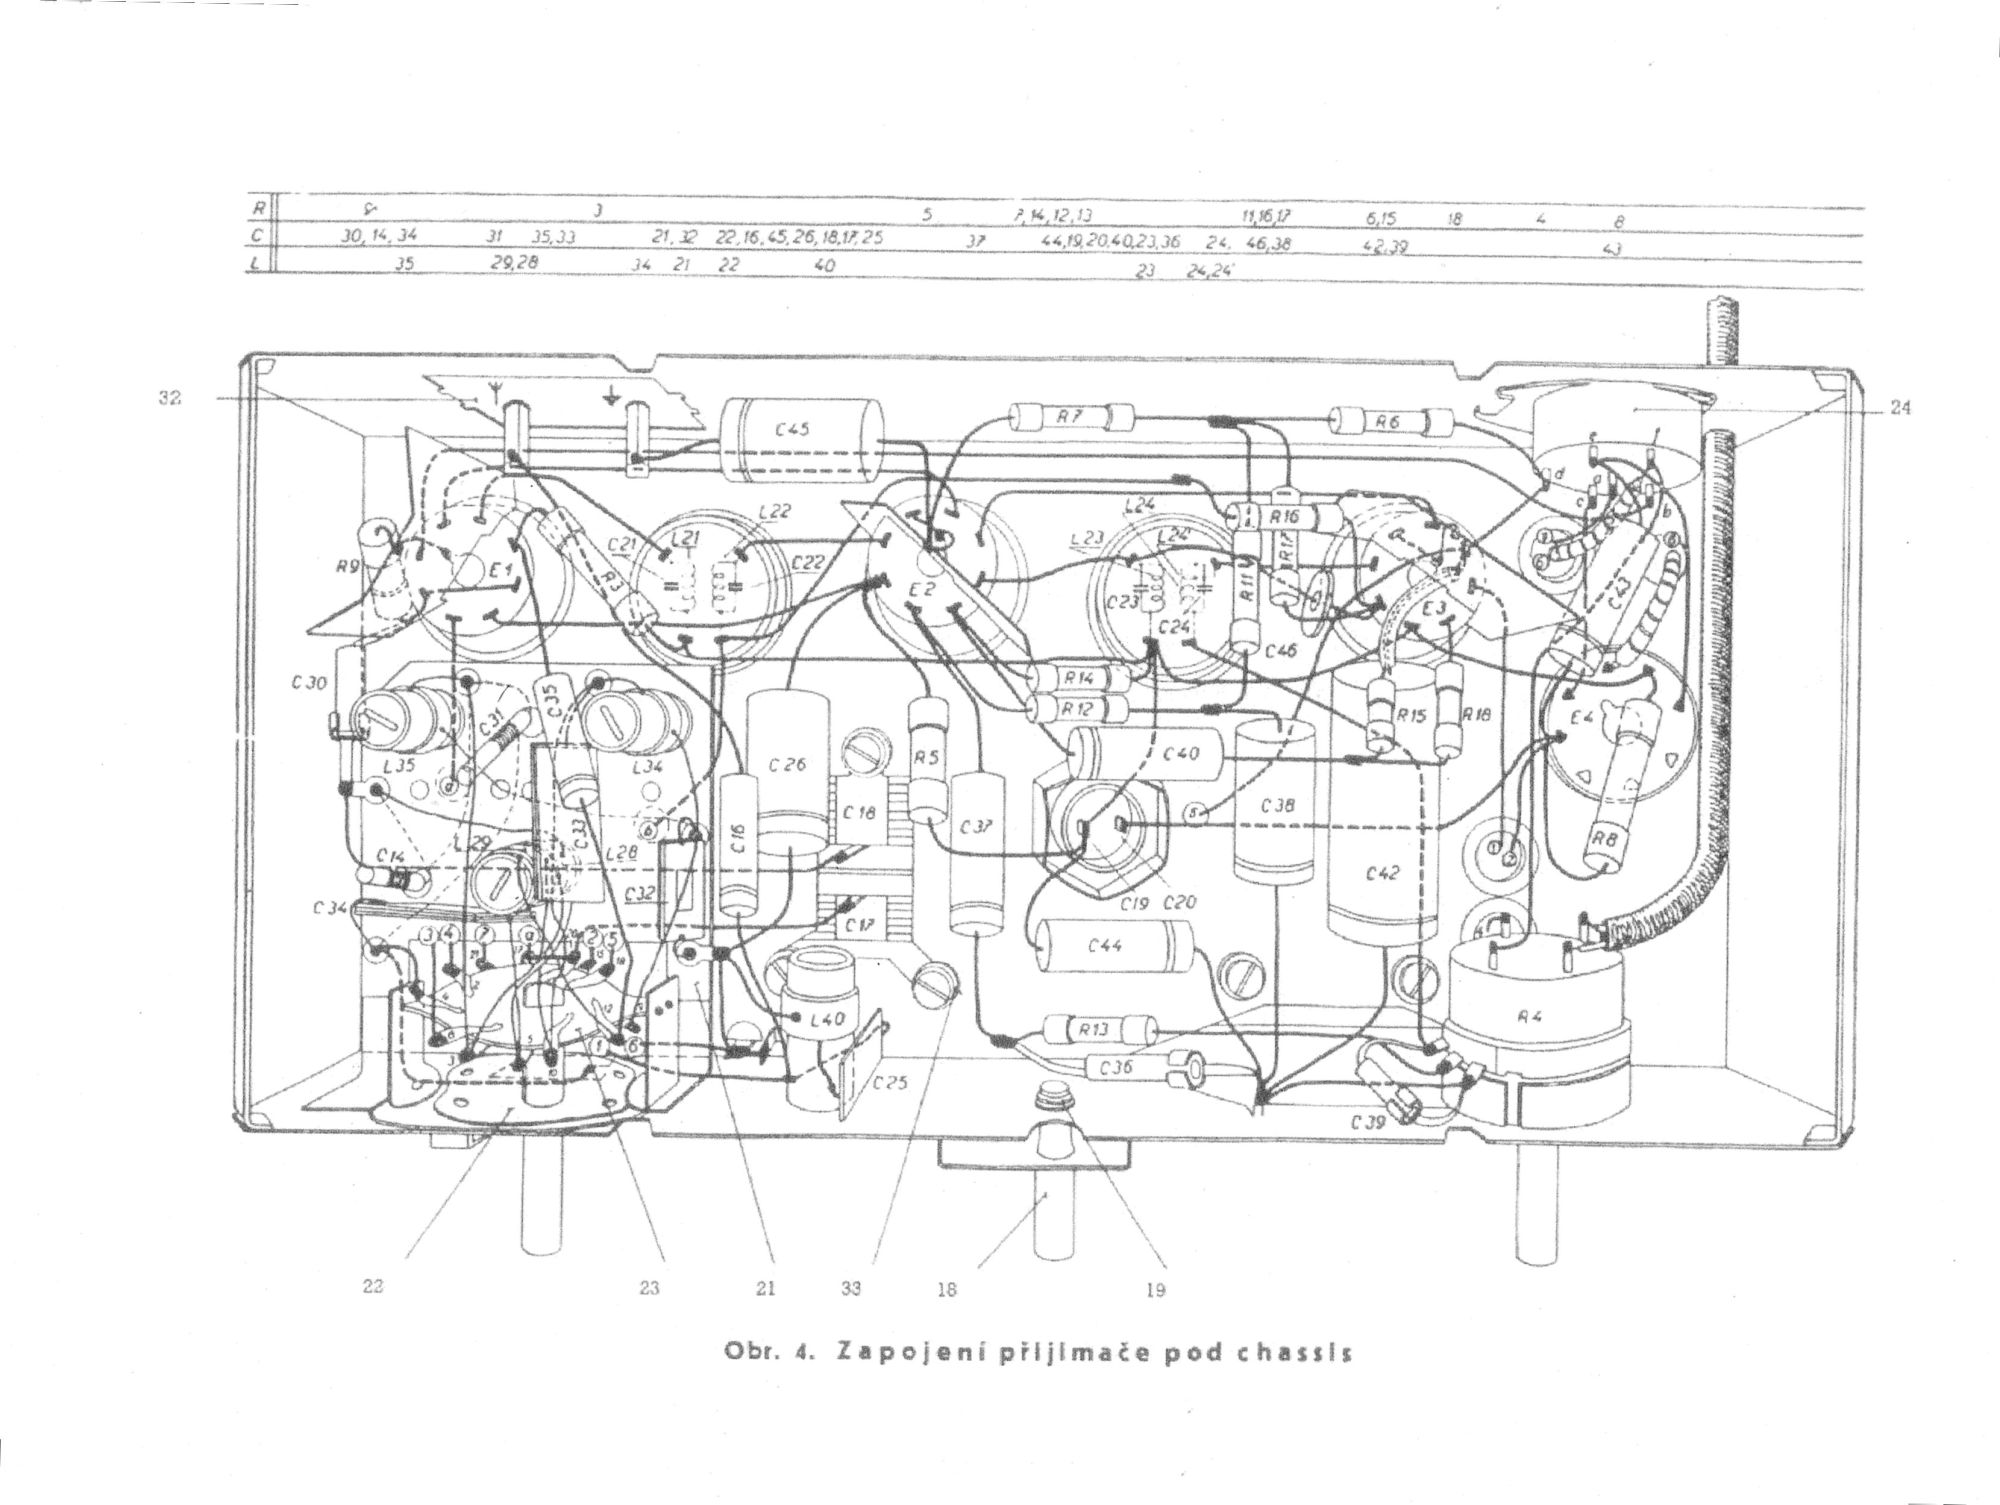 hight resolution of 1993 lexus sc300 fuse box wiring diagram today 1993 lexus sc300 fuse box